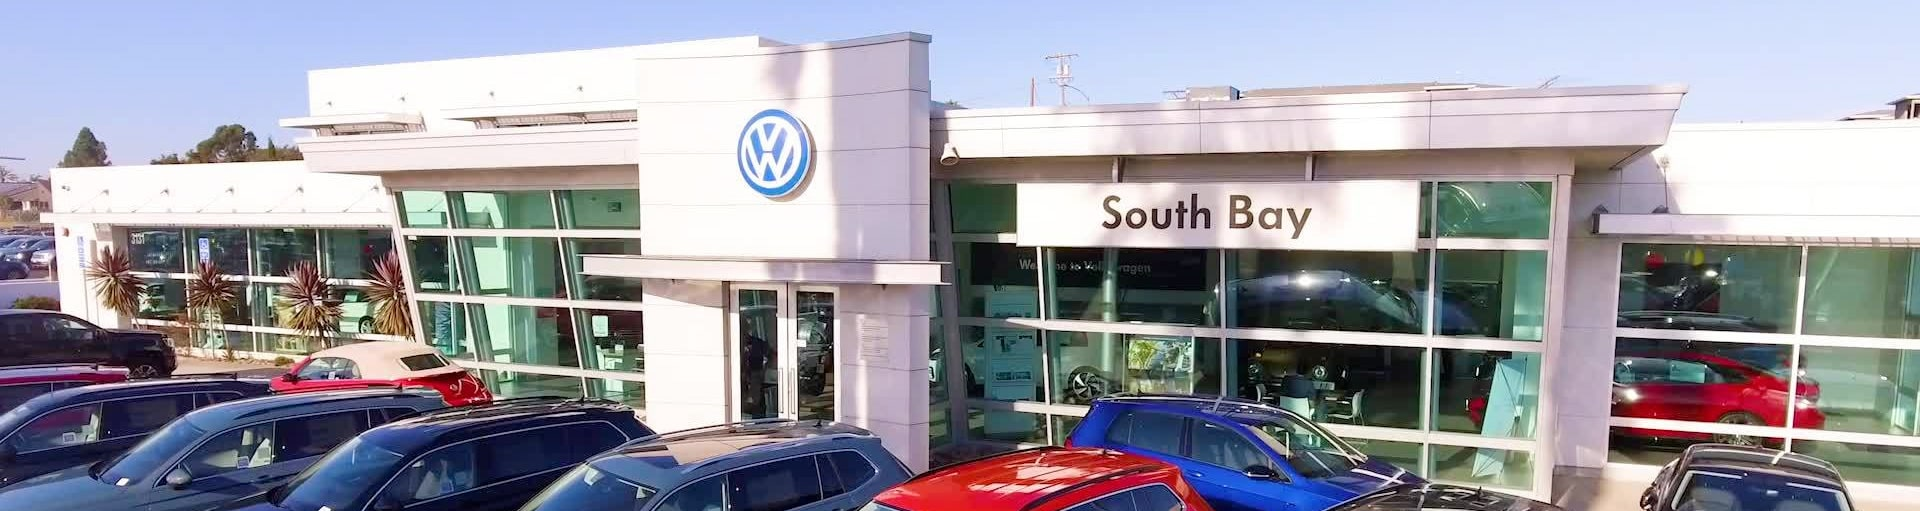 South Bay Volkswagen Service & Parts Specials